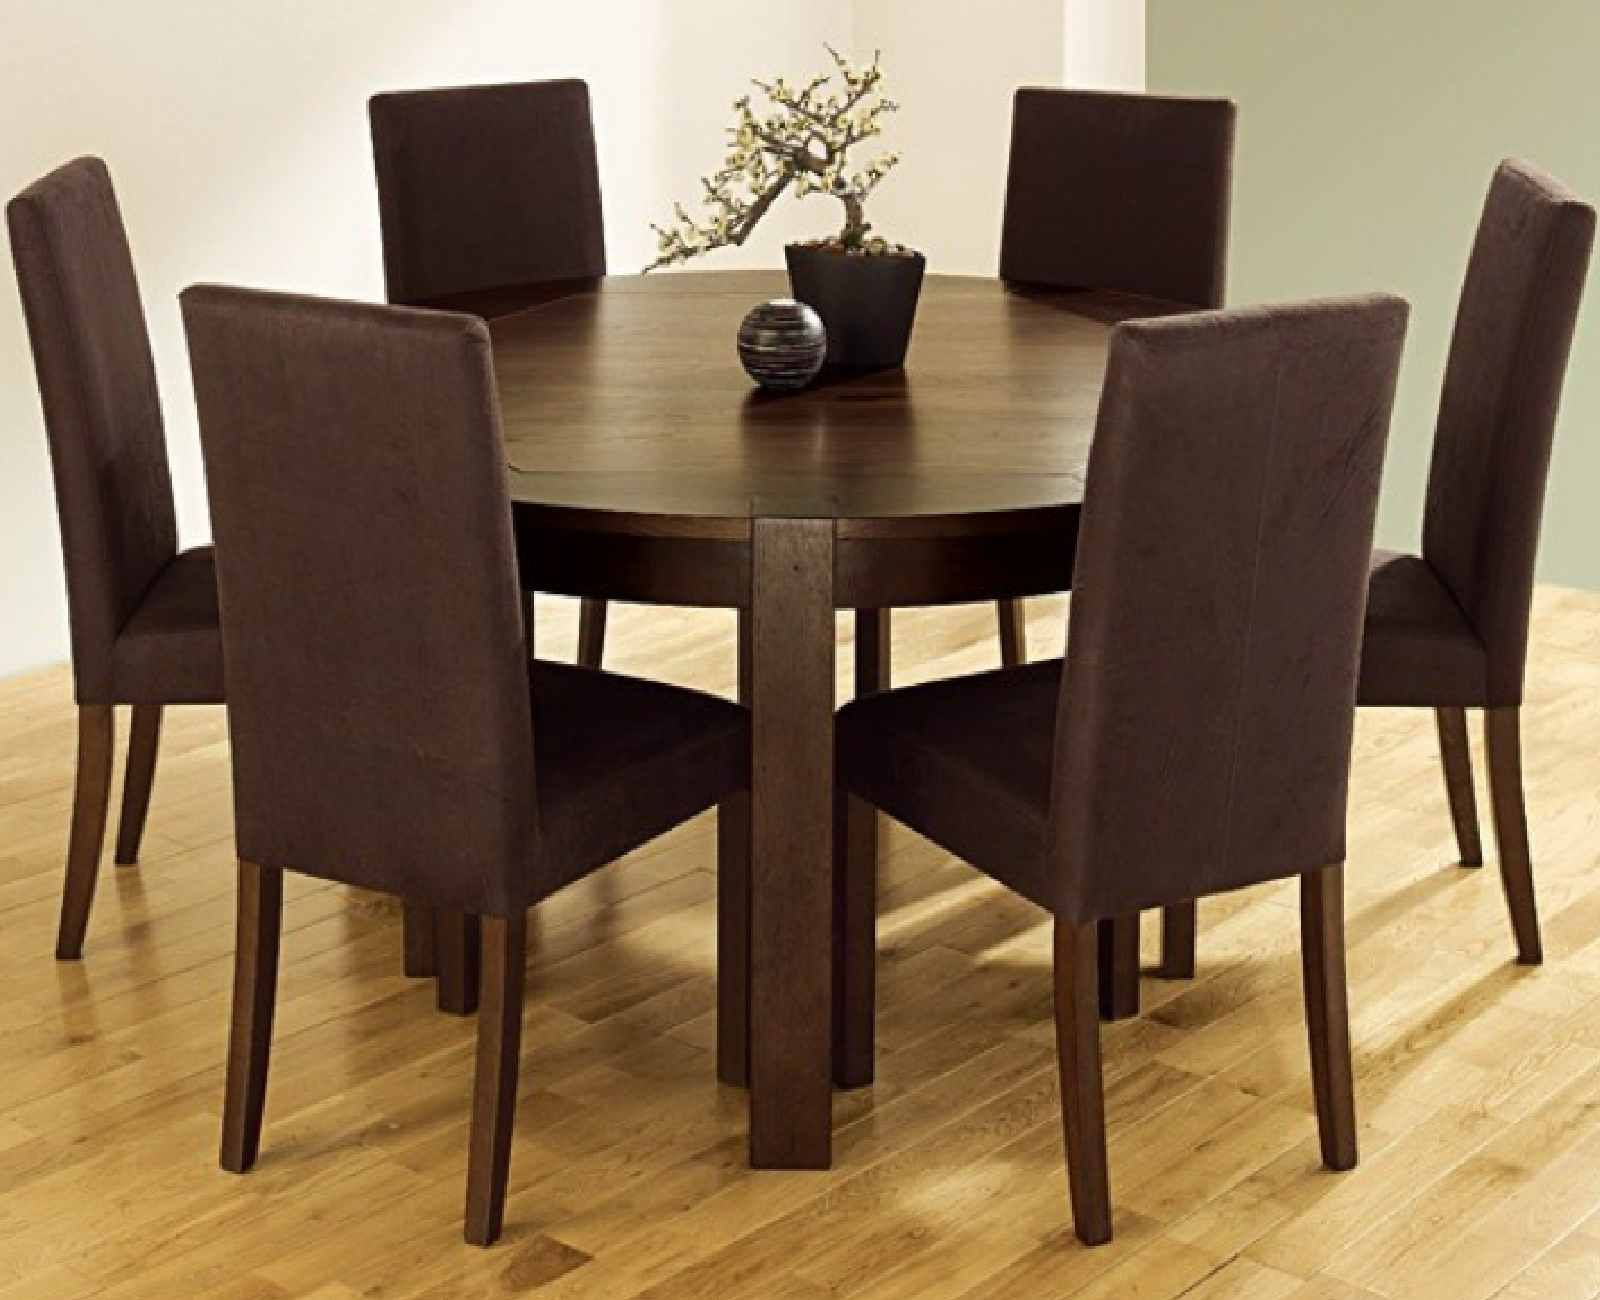 Find The Furniture Table And Chair Set That Fits Both Your